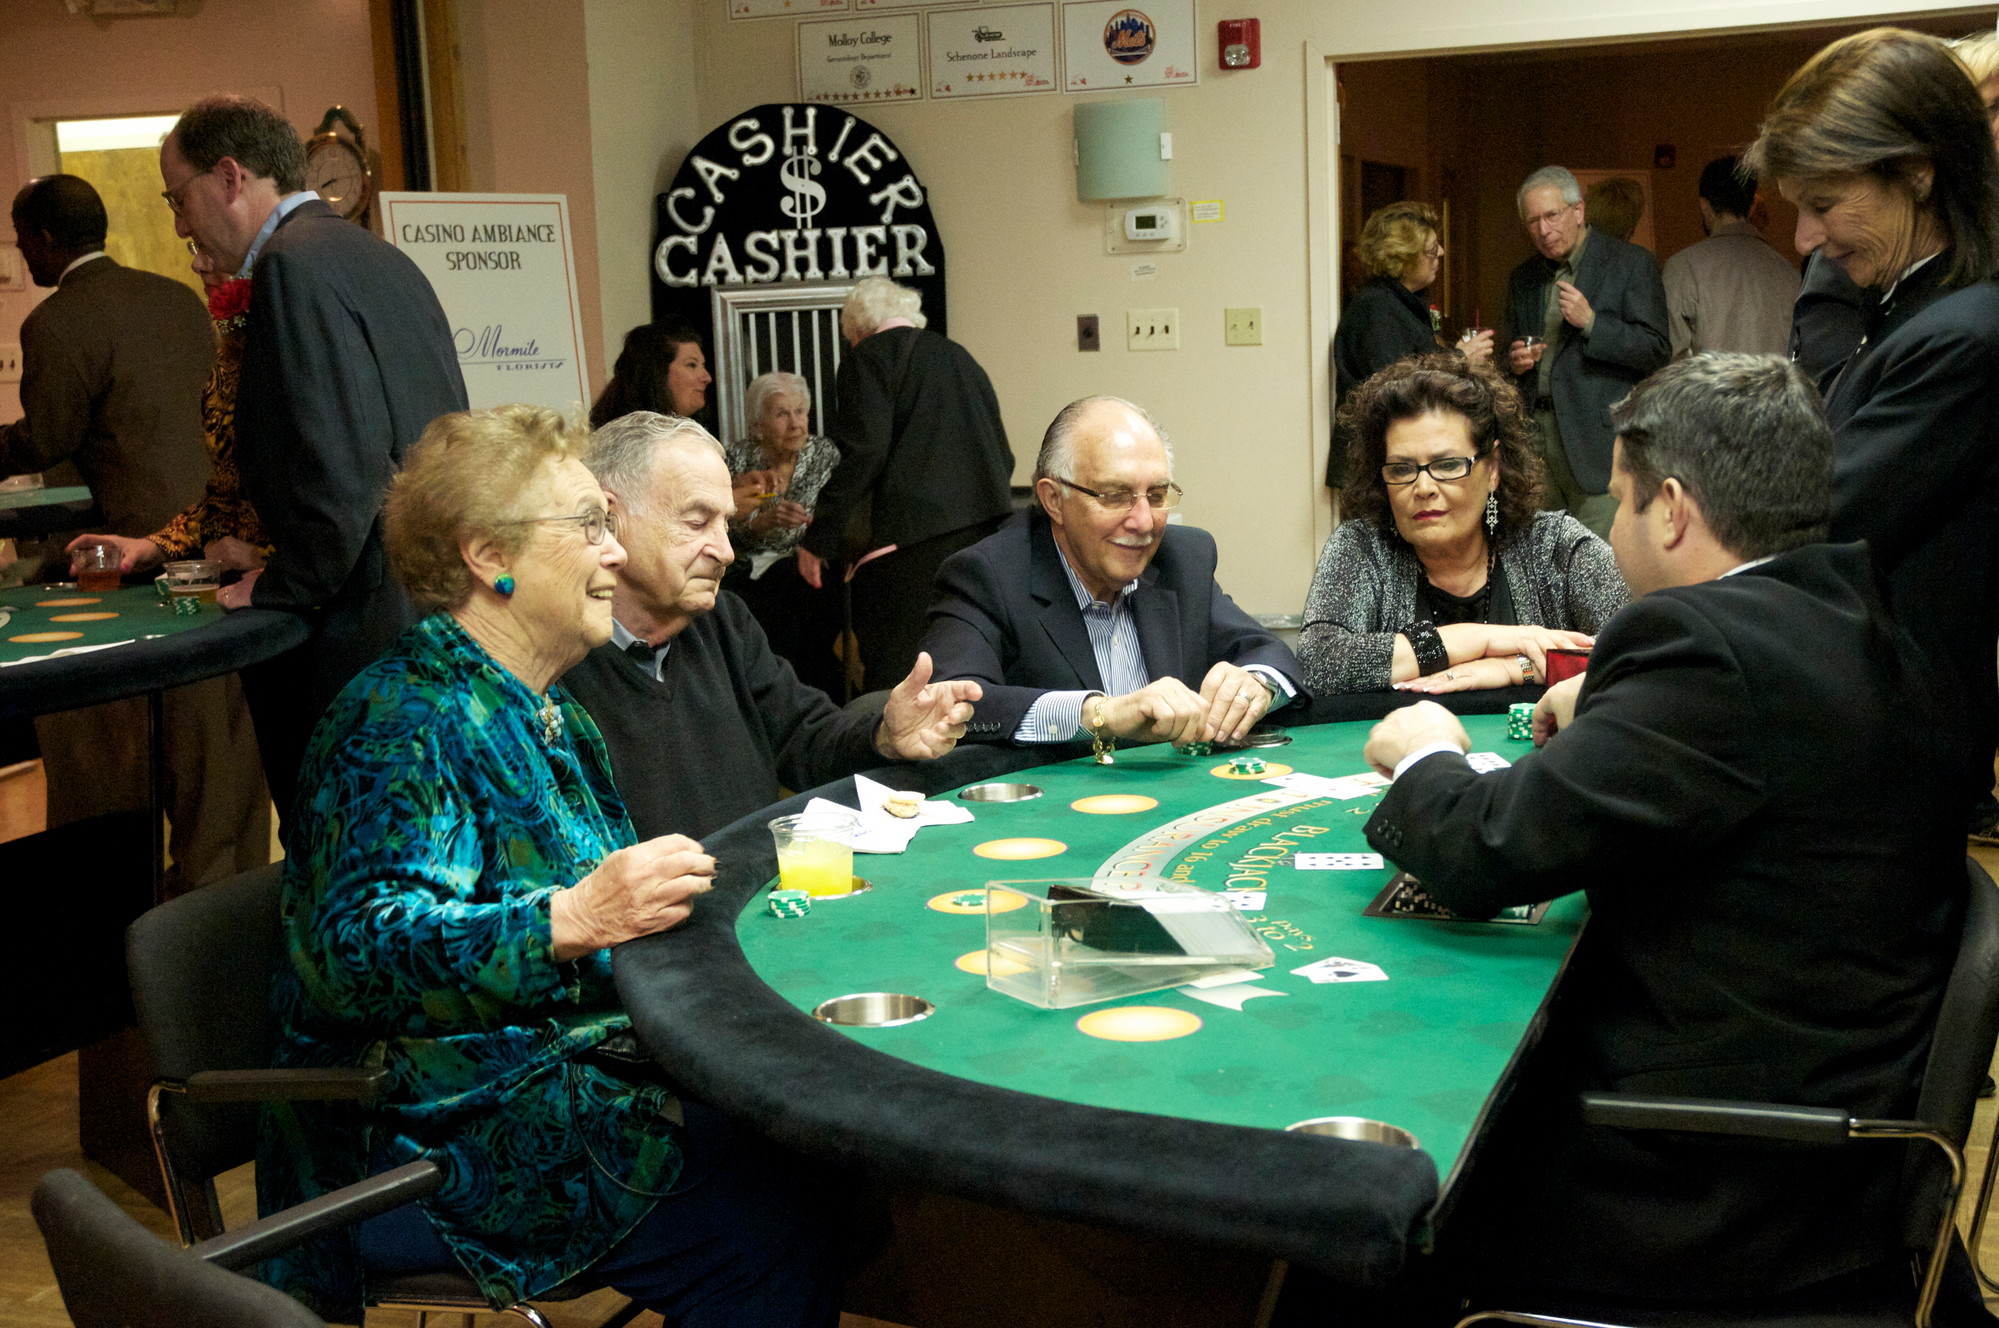 Residents came out last year to enjoy the Monte Carlo atmosphere and help raise money for the Sandel Center.